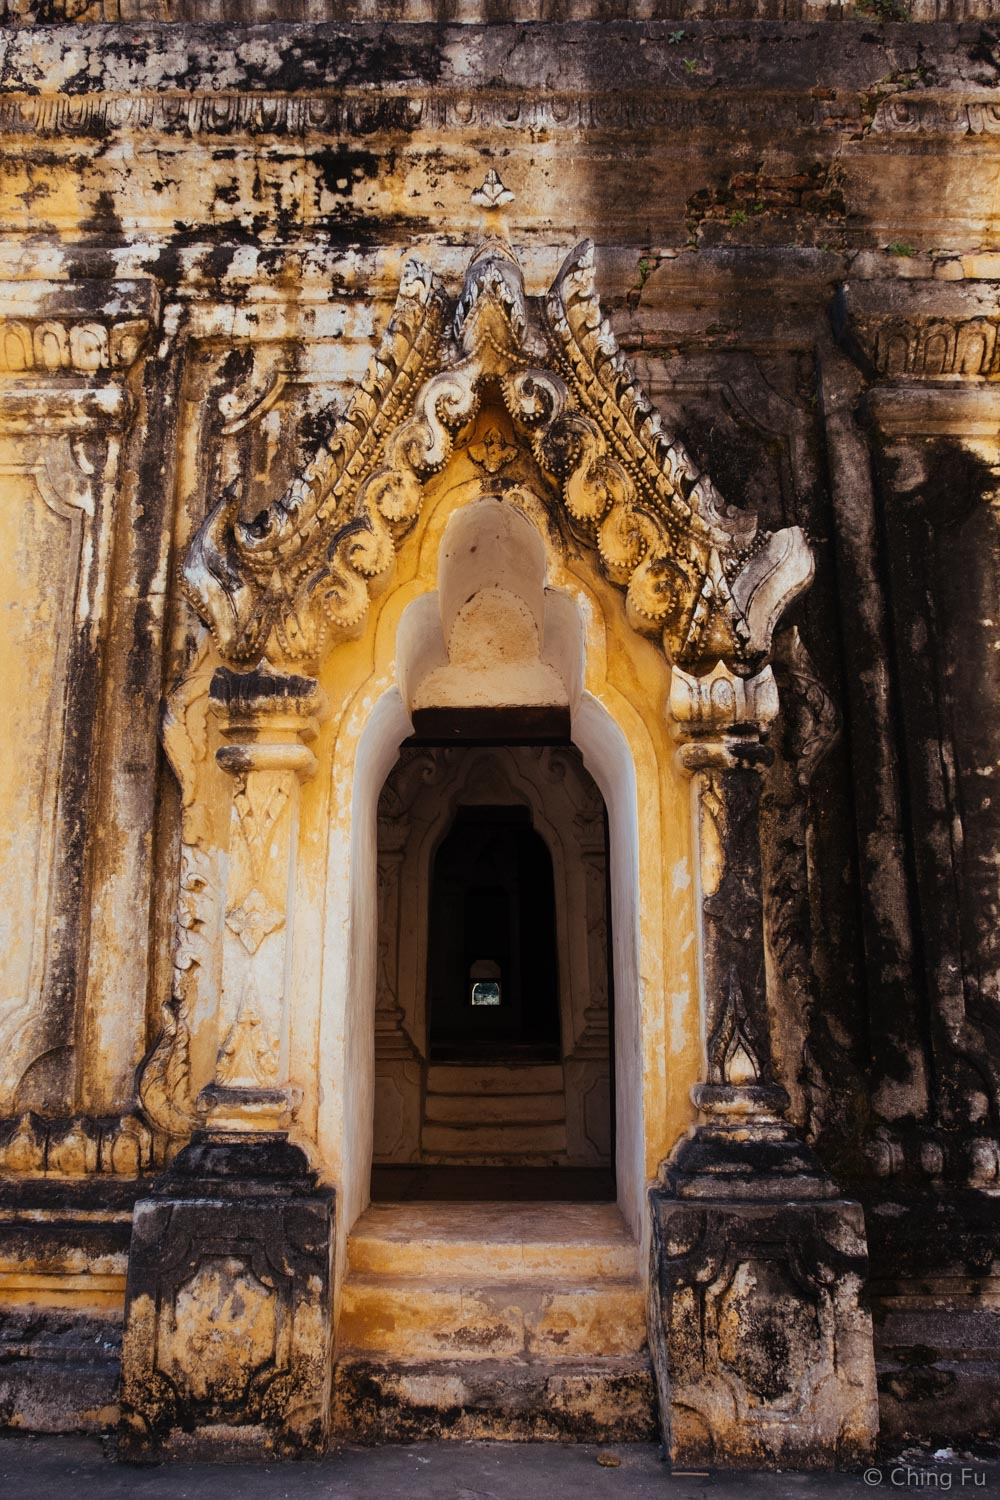 Doorway at Maha Aung Mye Bon Zan Monastery